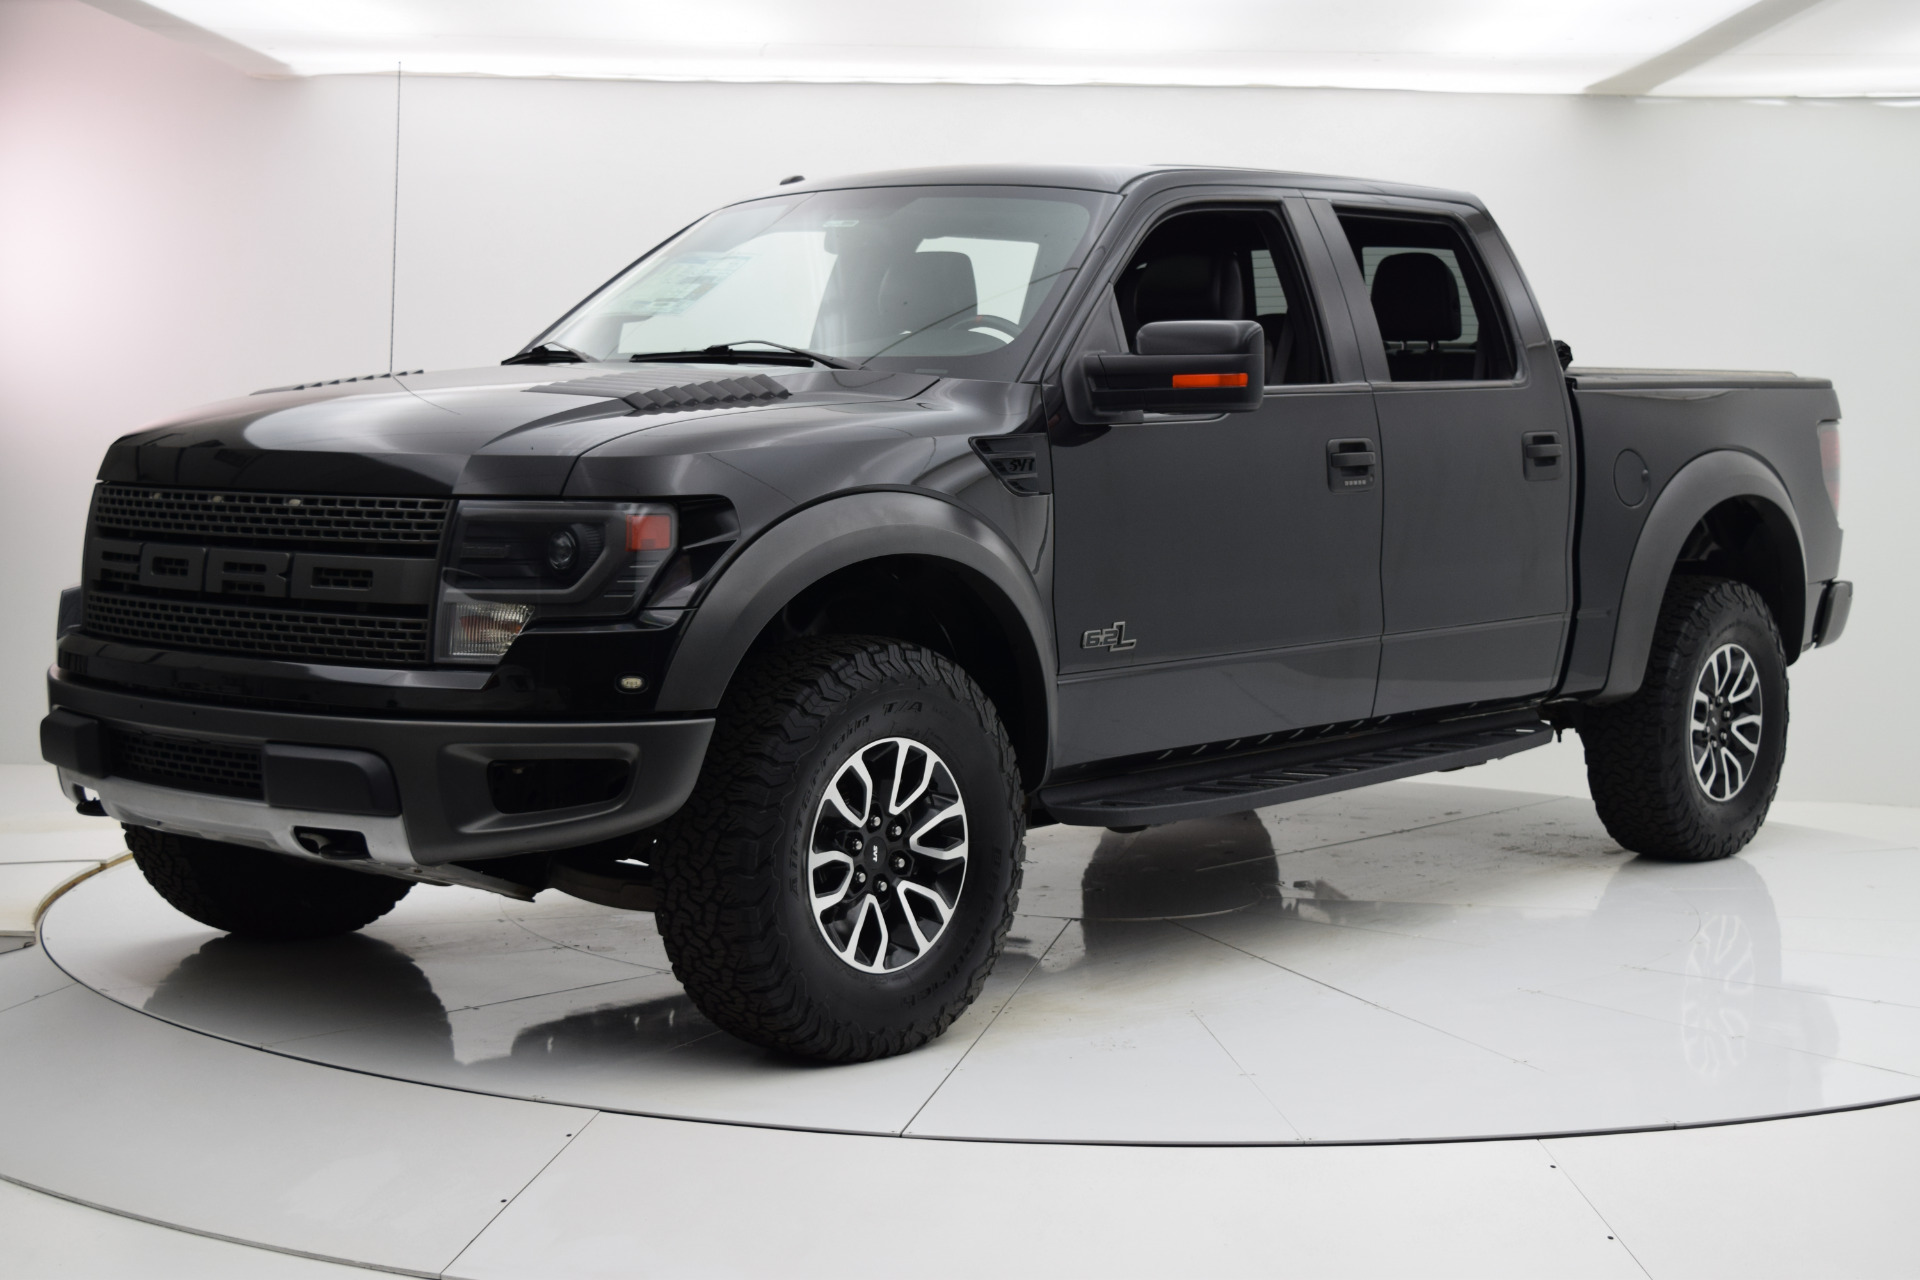 Used 2013 Ford F-150 SVT Raptor for sale $39,880 at F.C. Kerbeck Aston Martin in Palmyra NJ 08065 2